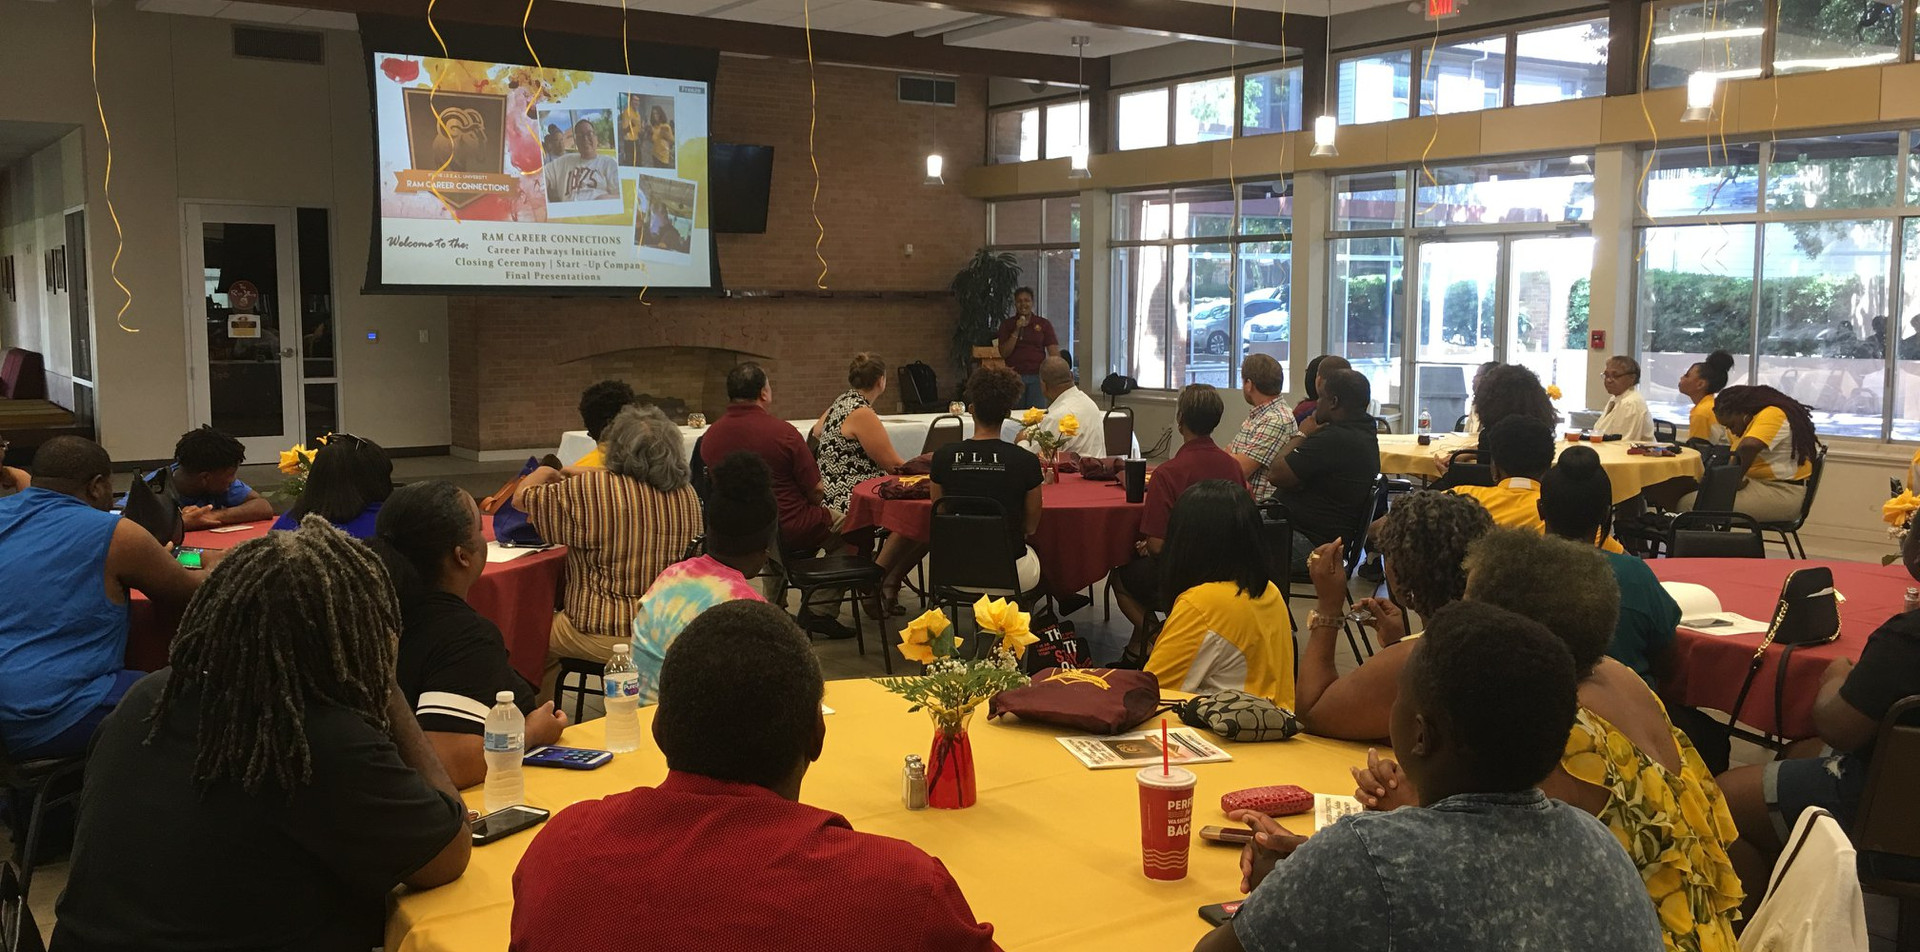 Career Pathways Initiative Pitch Event at Huston-Tillotson University